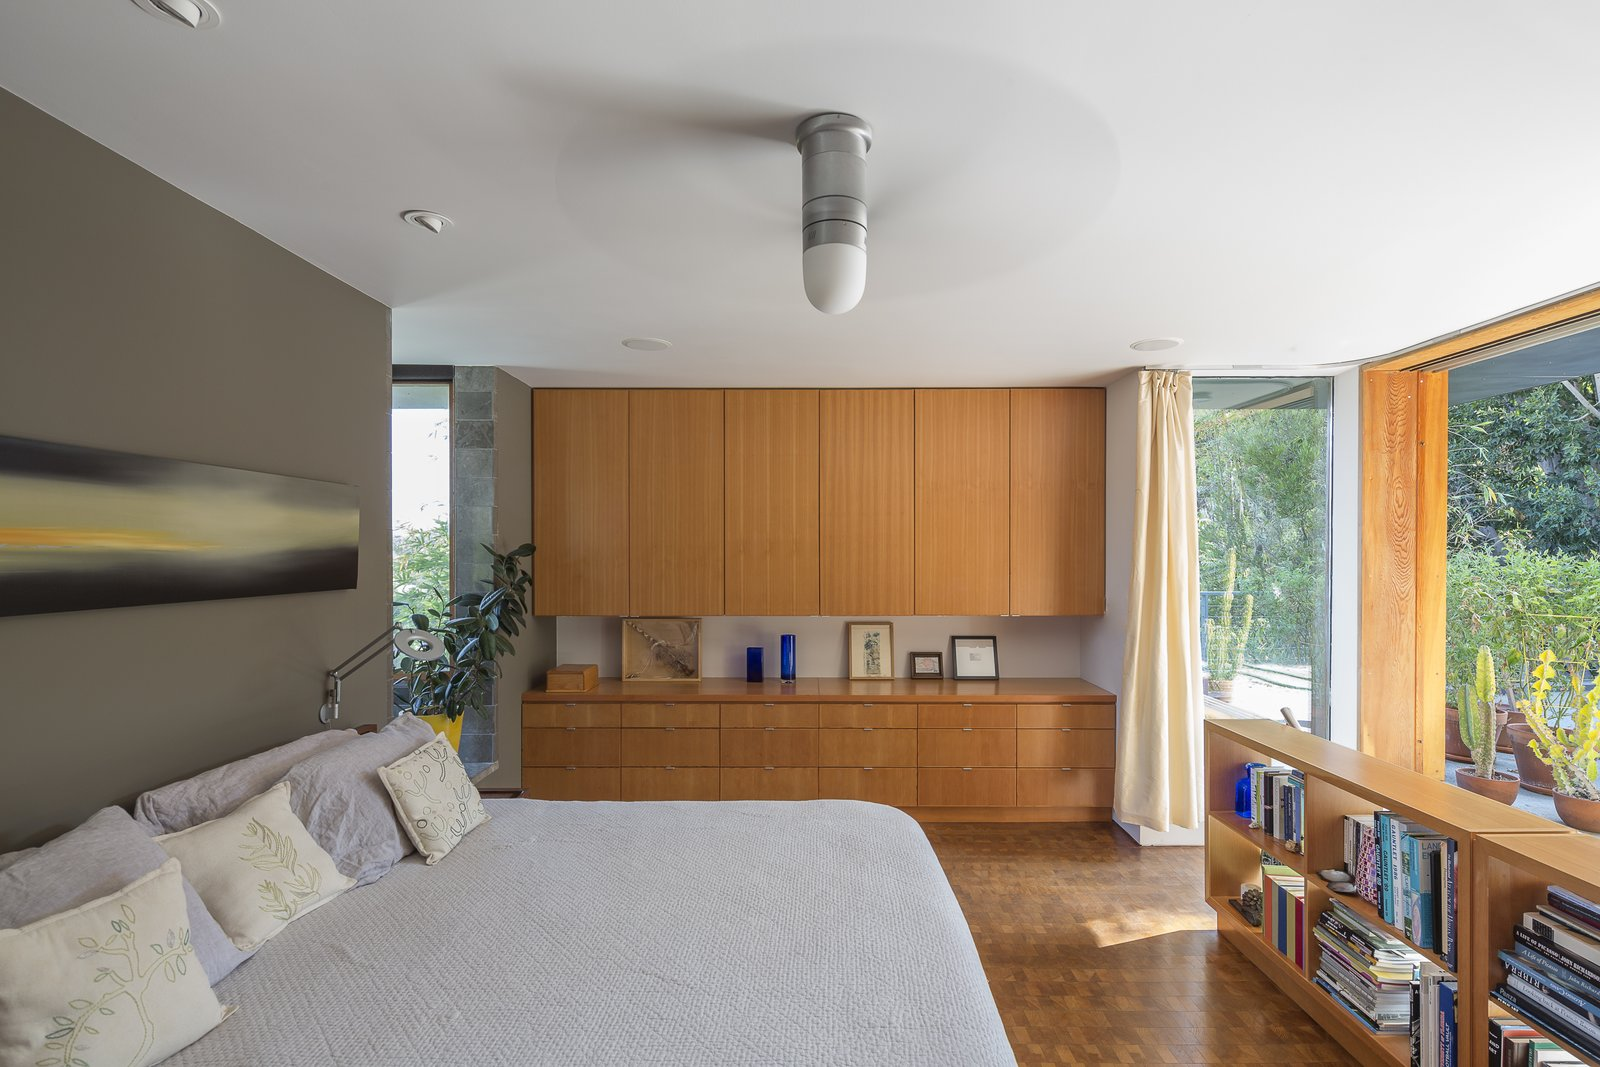 Bedroom, Bed, Bookcase, Storage, Ceiling, Dresser, Recessed, and Medium Hardwood Master Bedroom  Best Bedroom Storage Bookcase Ceiling Medium Hardwood Photos from NHN House